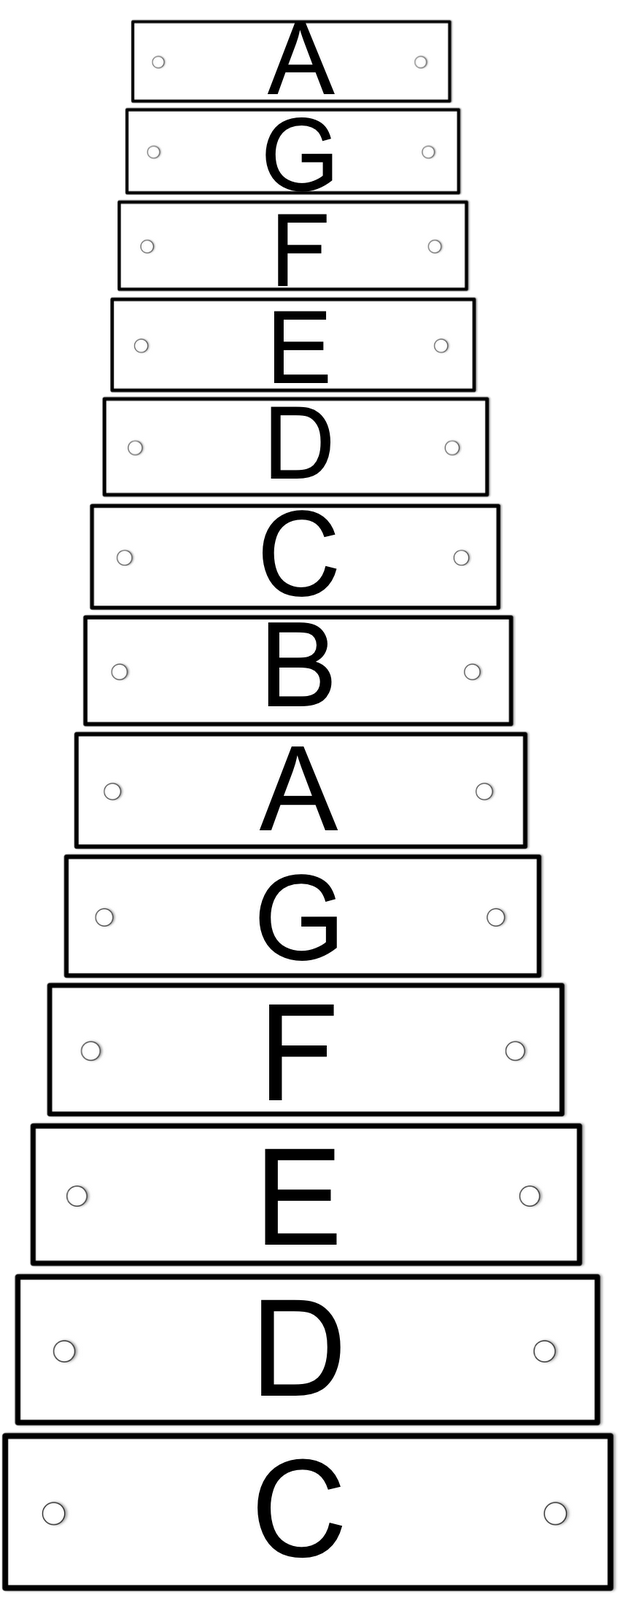 Visual aids technologi information. Xylophone clipart orff